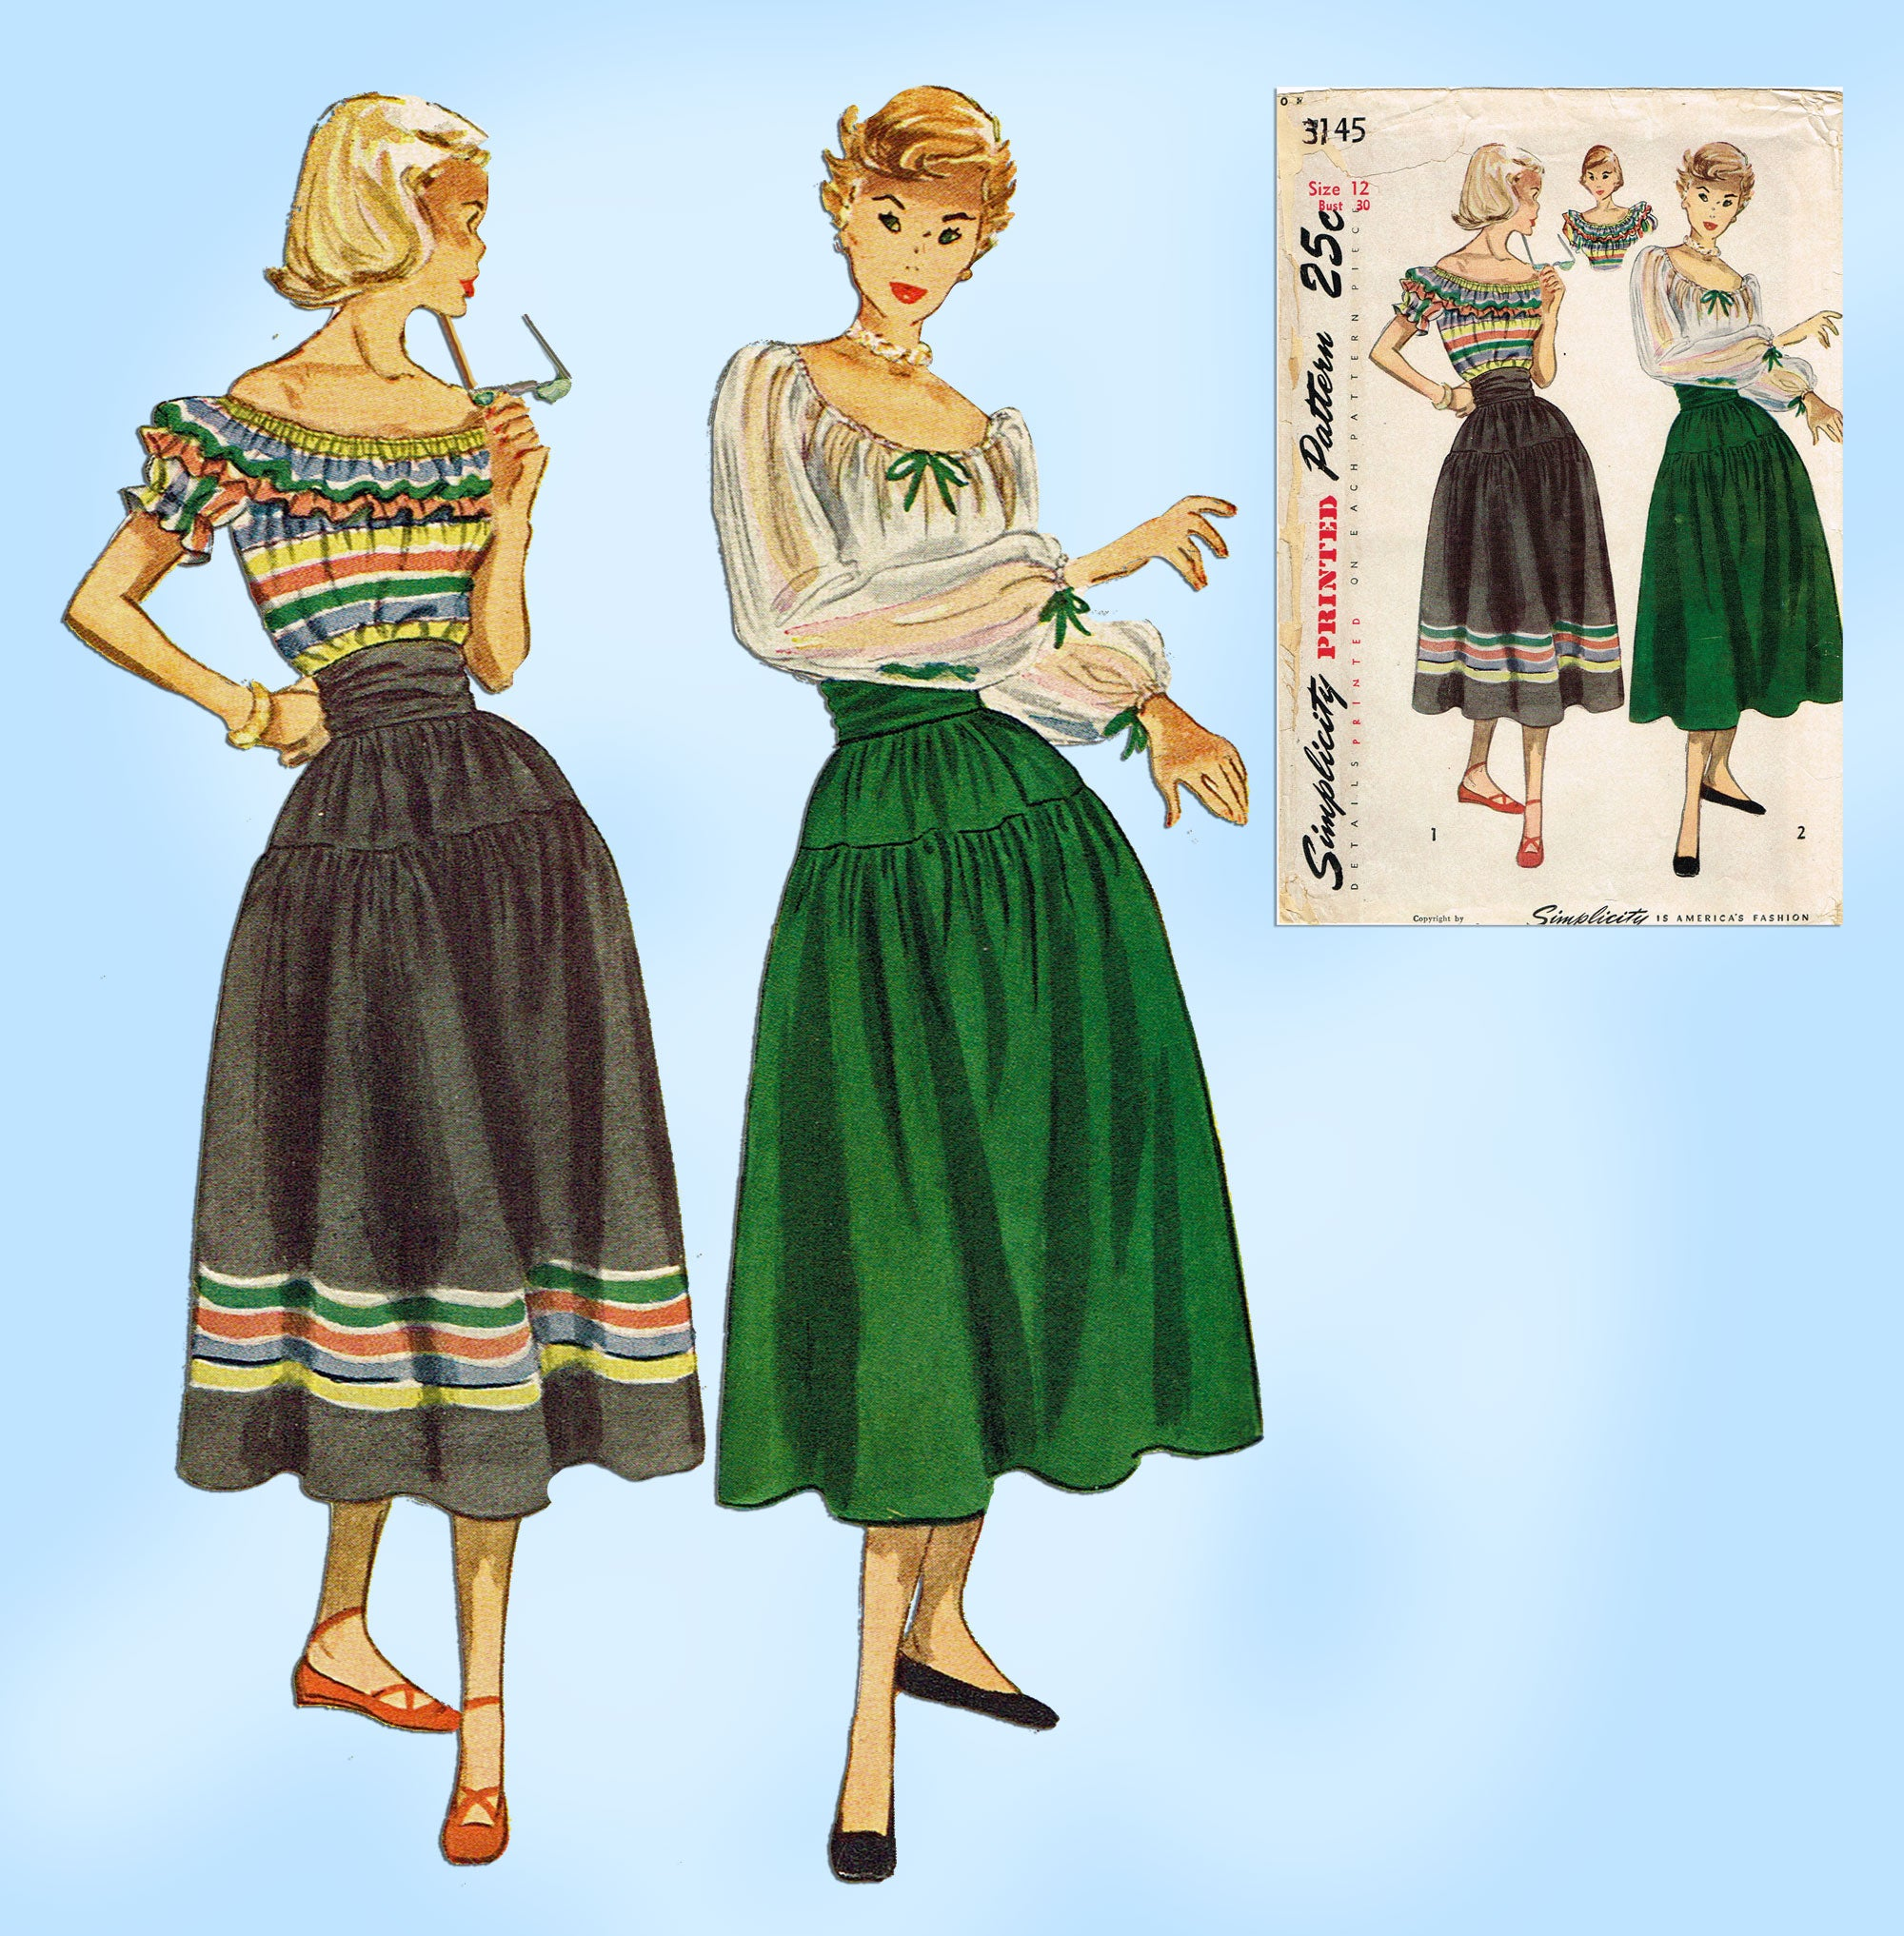 Vintage 1930/'s Simplicity 3130 Sewing Pattern Misses/' Blouse and Ruffled Skirt Size 12 Bust 30